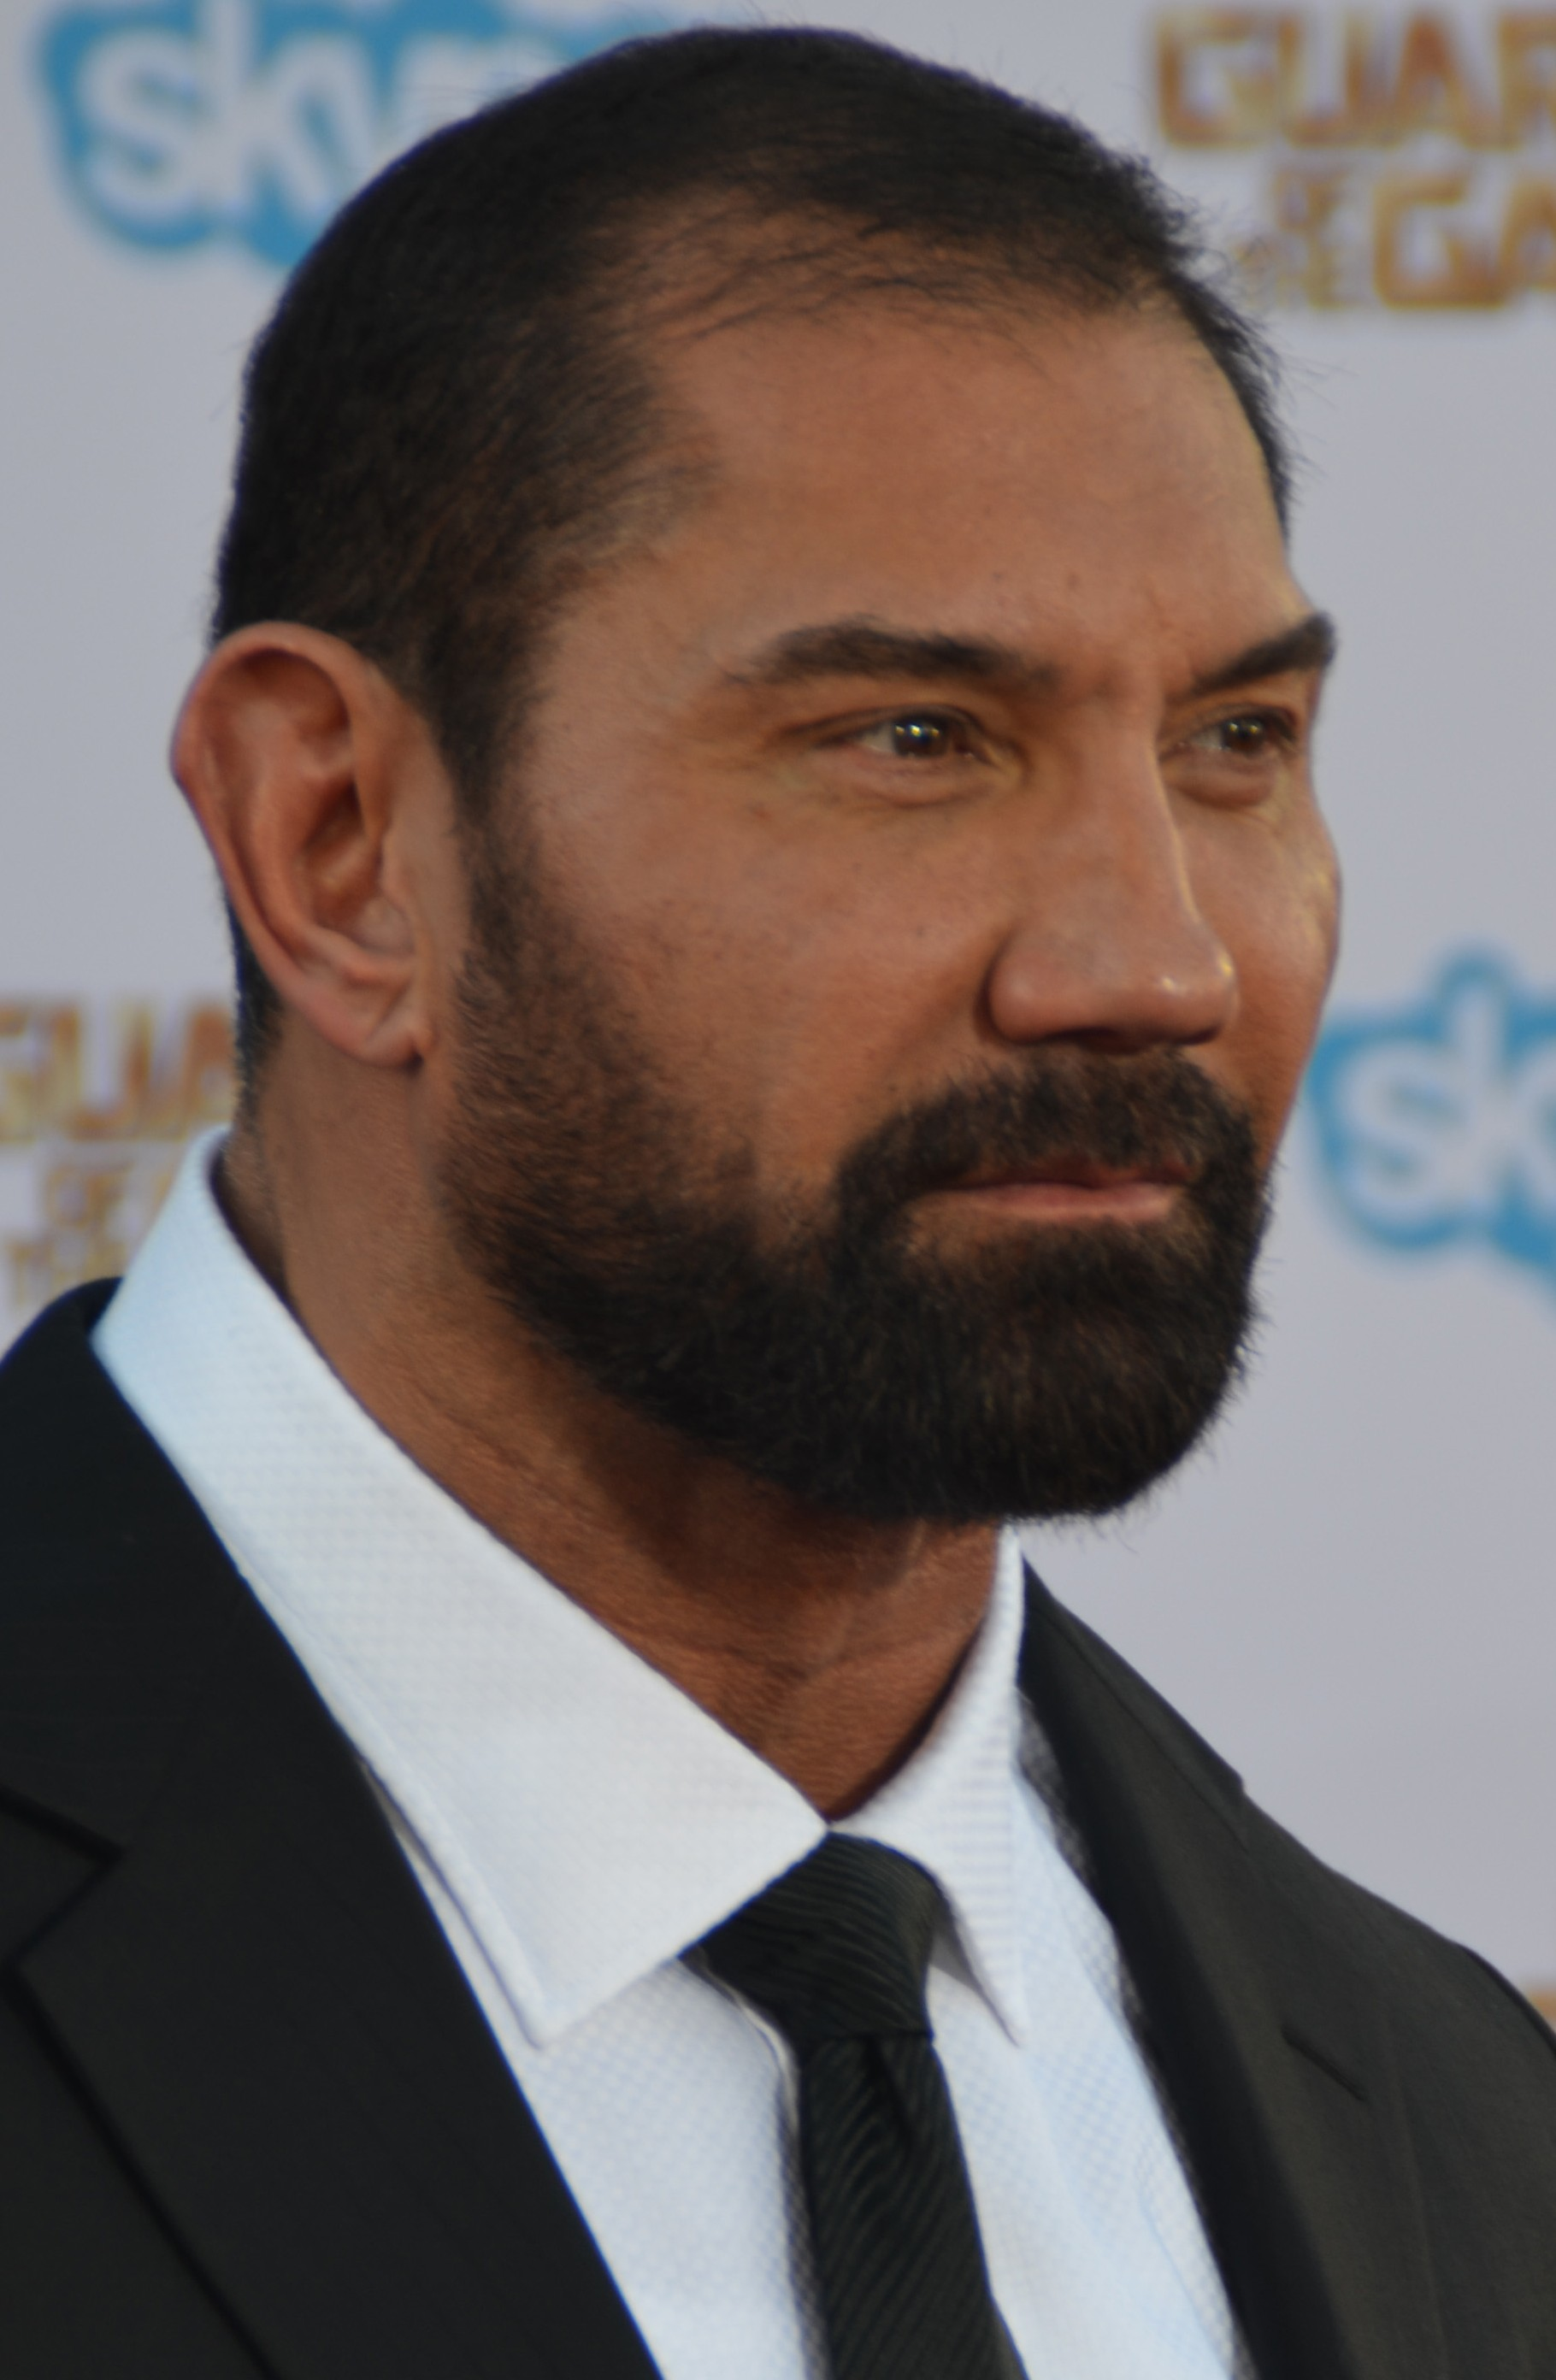 dave bautista 2017dave bautista instagram, dave bautista 2017, dave bautista wife, dave bautista filmleri, dave bautista wiki, dave bautista net worth, dave bautista spectre, dave bautista tattoo, dave batista height, dave bautista james bond, dave batista mma, dave bautista age, dave bautista films, dave batista tattoos, dave bautista workout, dave bautista wikipedia, dave bautista fight, dave bautista house, dave bautista and sarah jade, dave bautista filmography